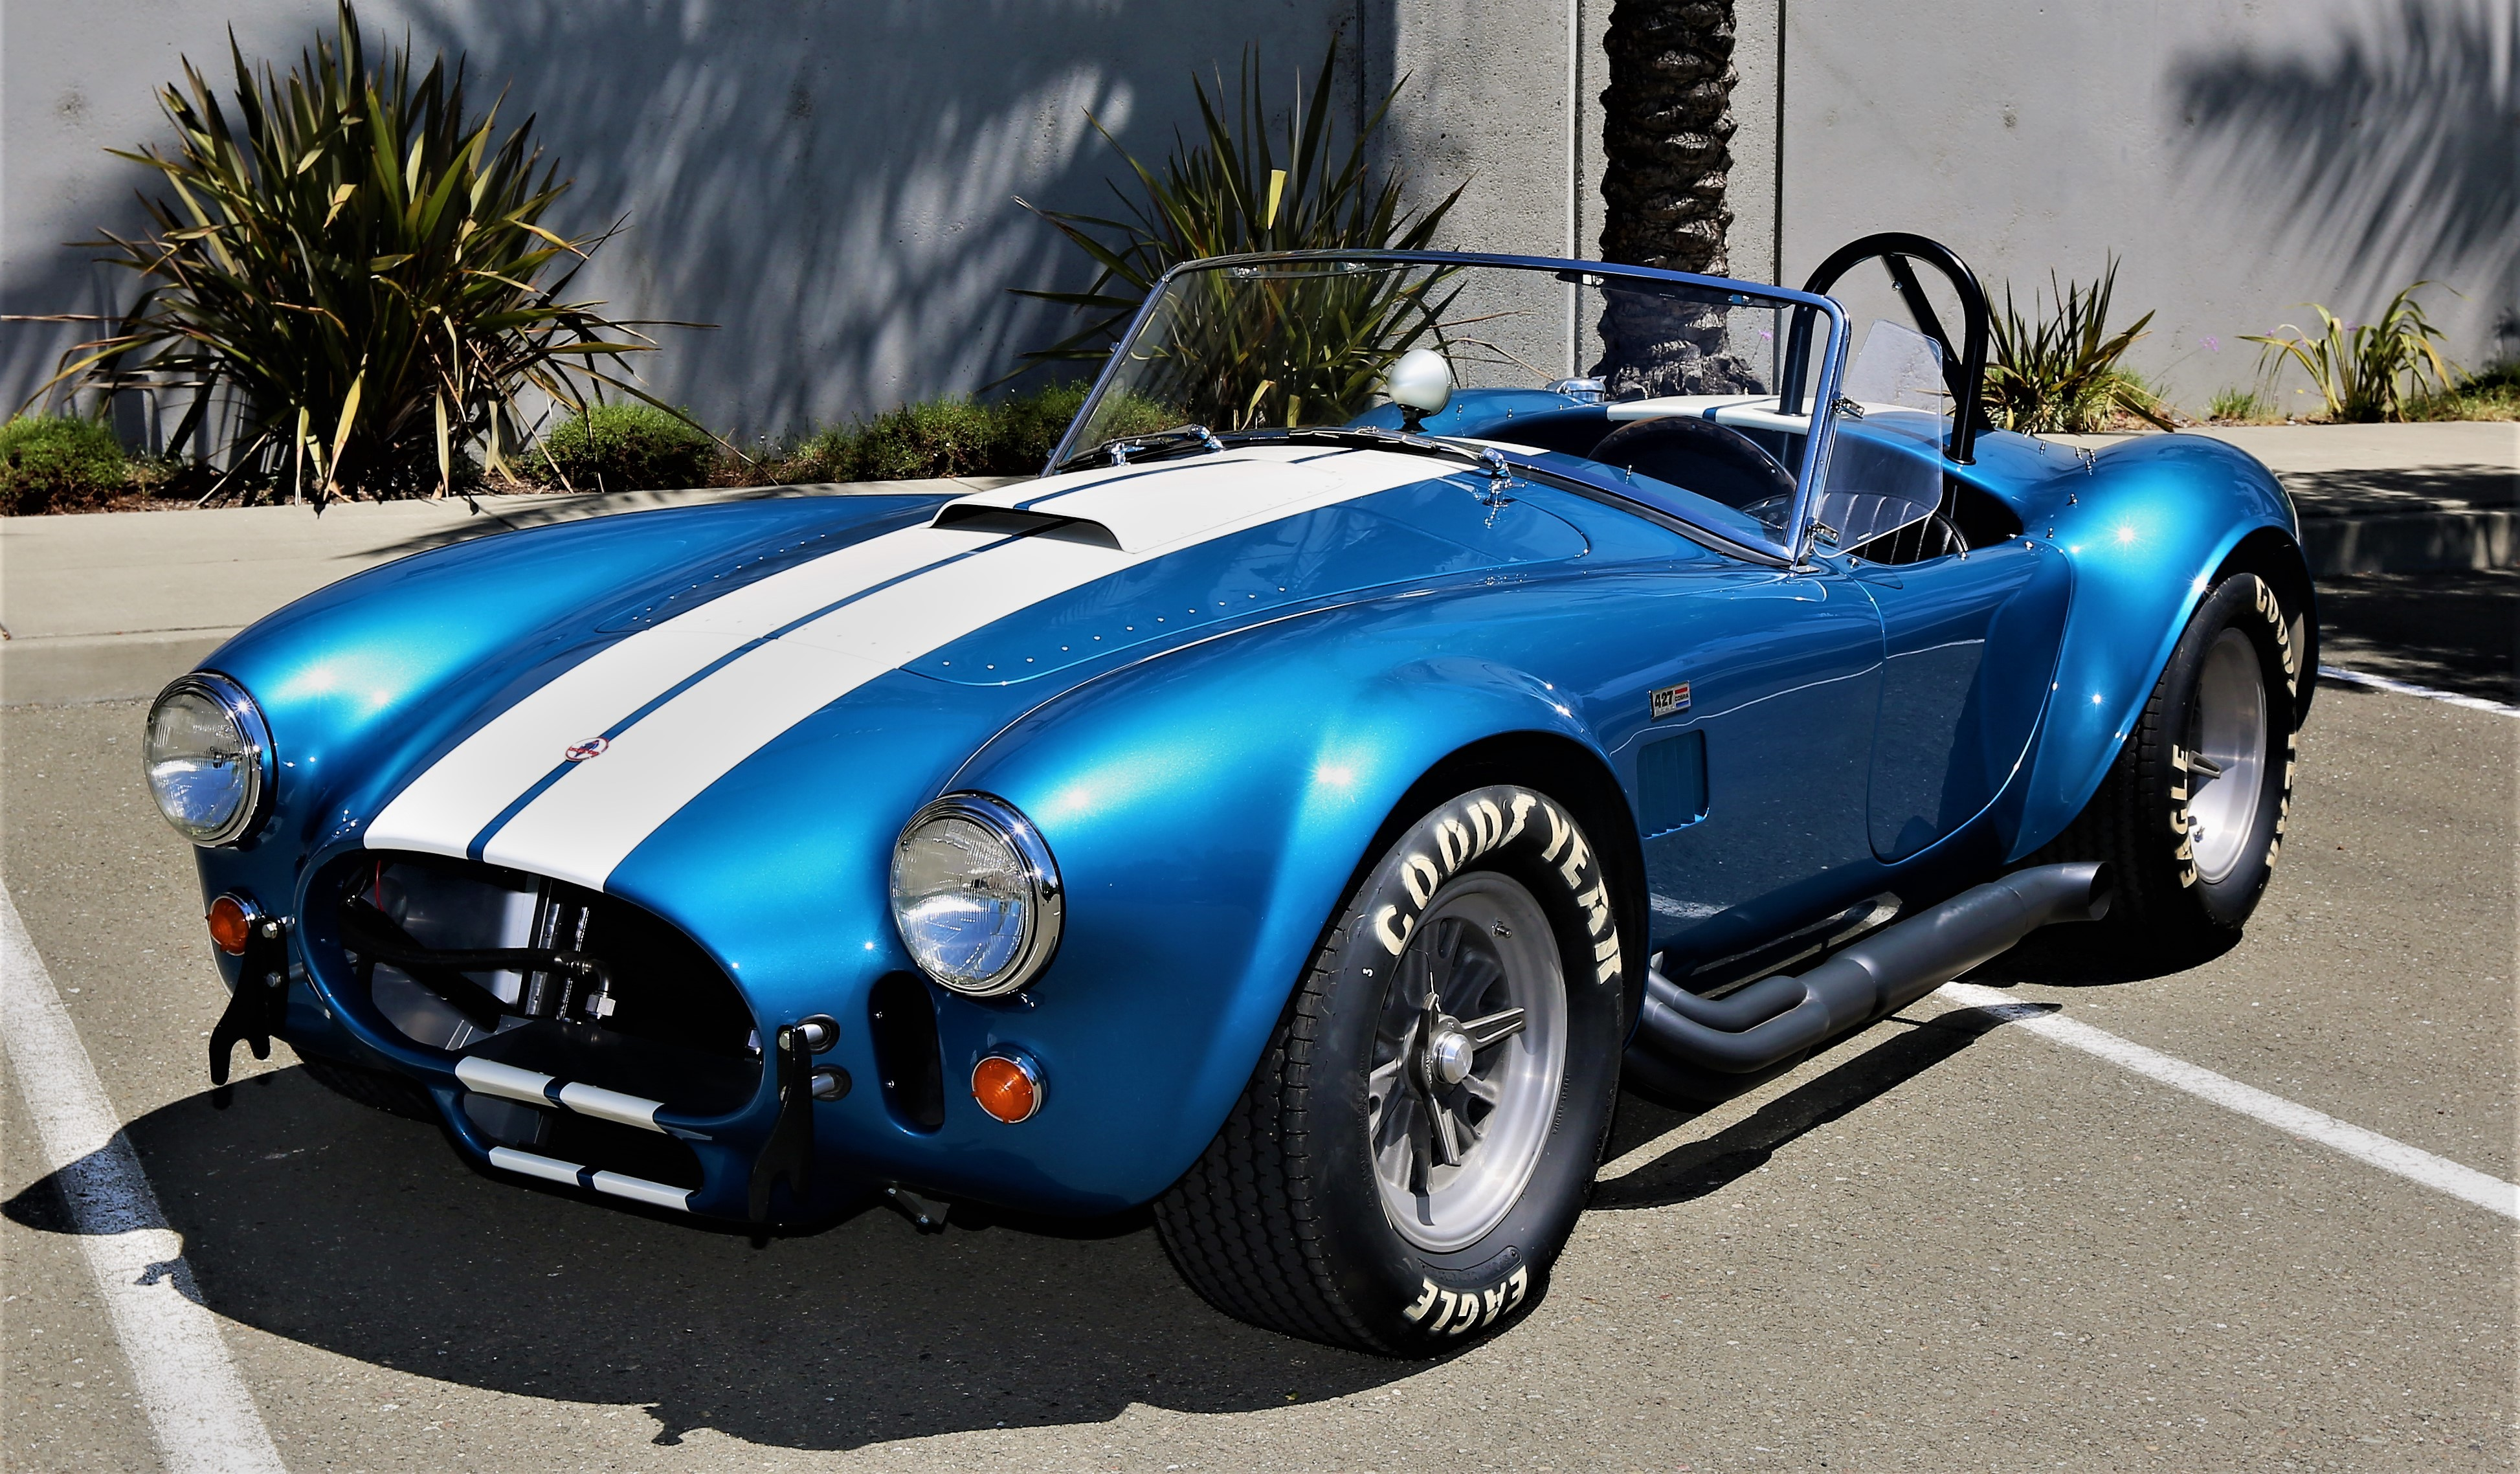 Genuine 427 shelby competition cobra racecar production goes full throttle business wire